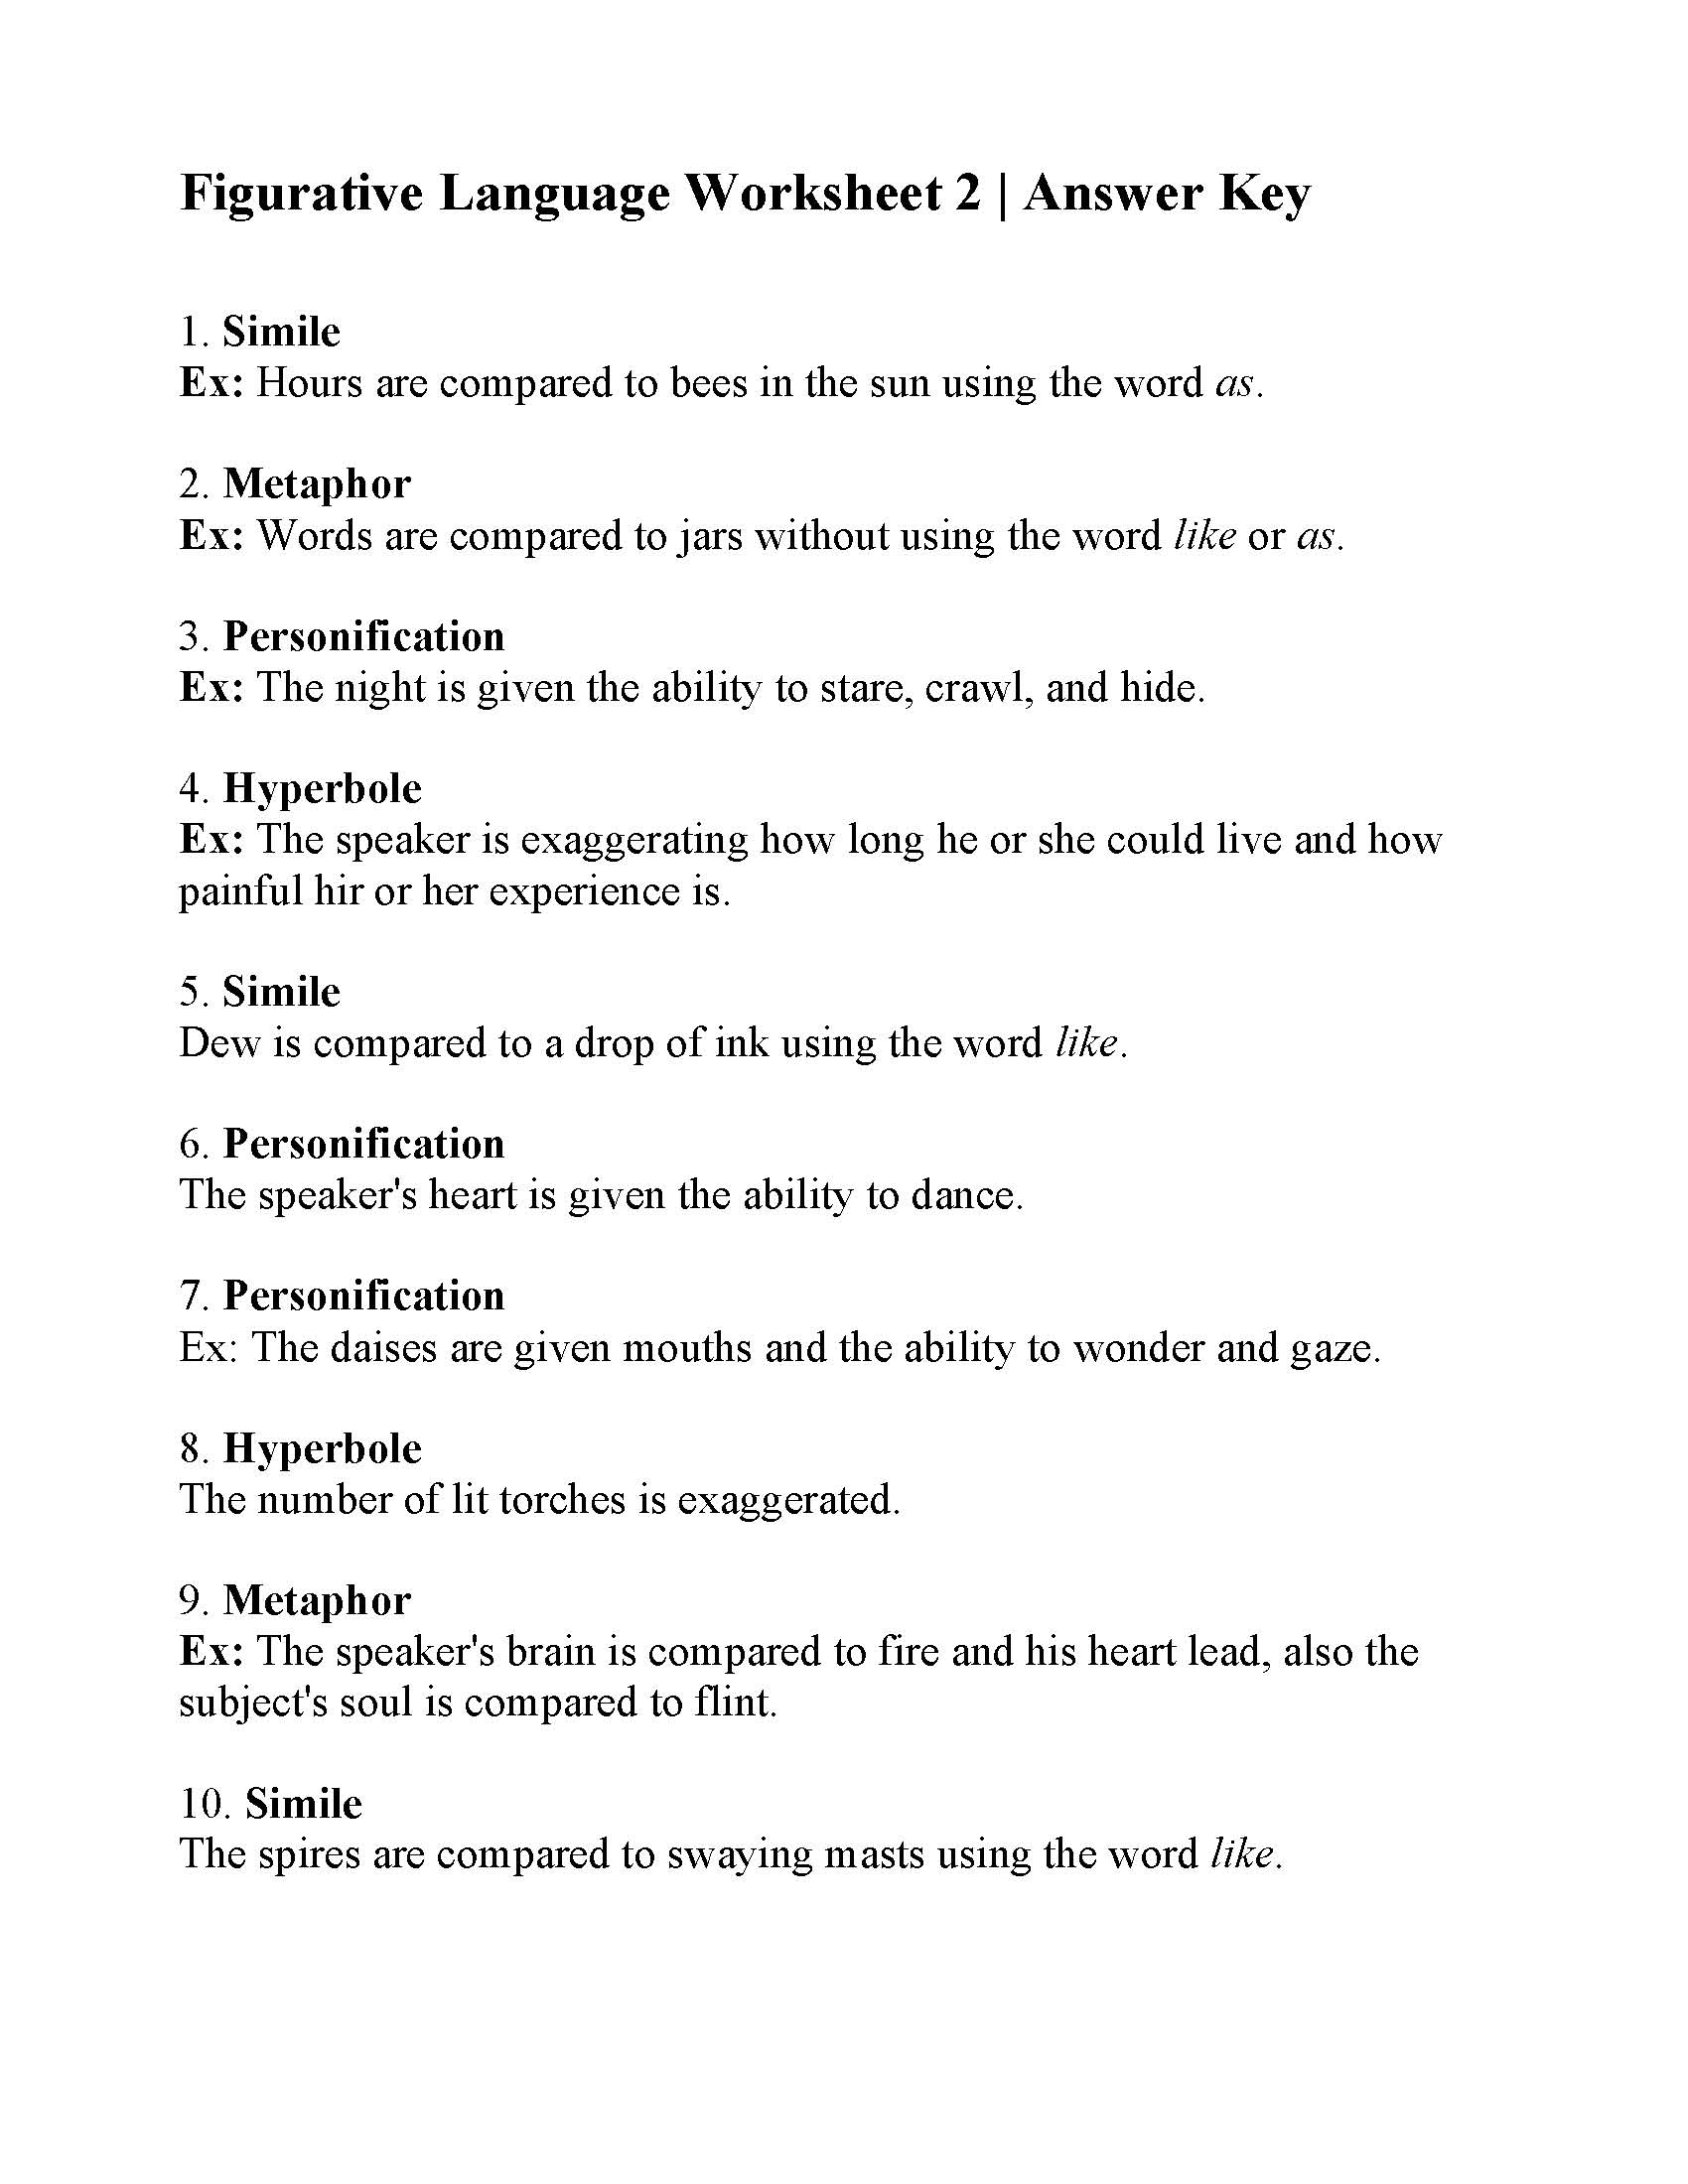 Figurative Language Worksheets 6th Grade